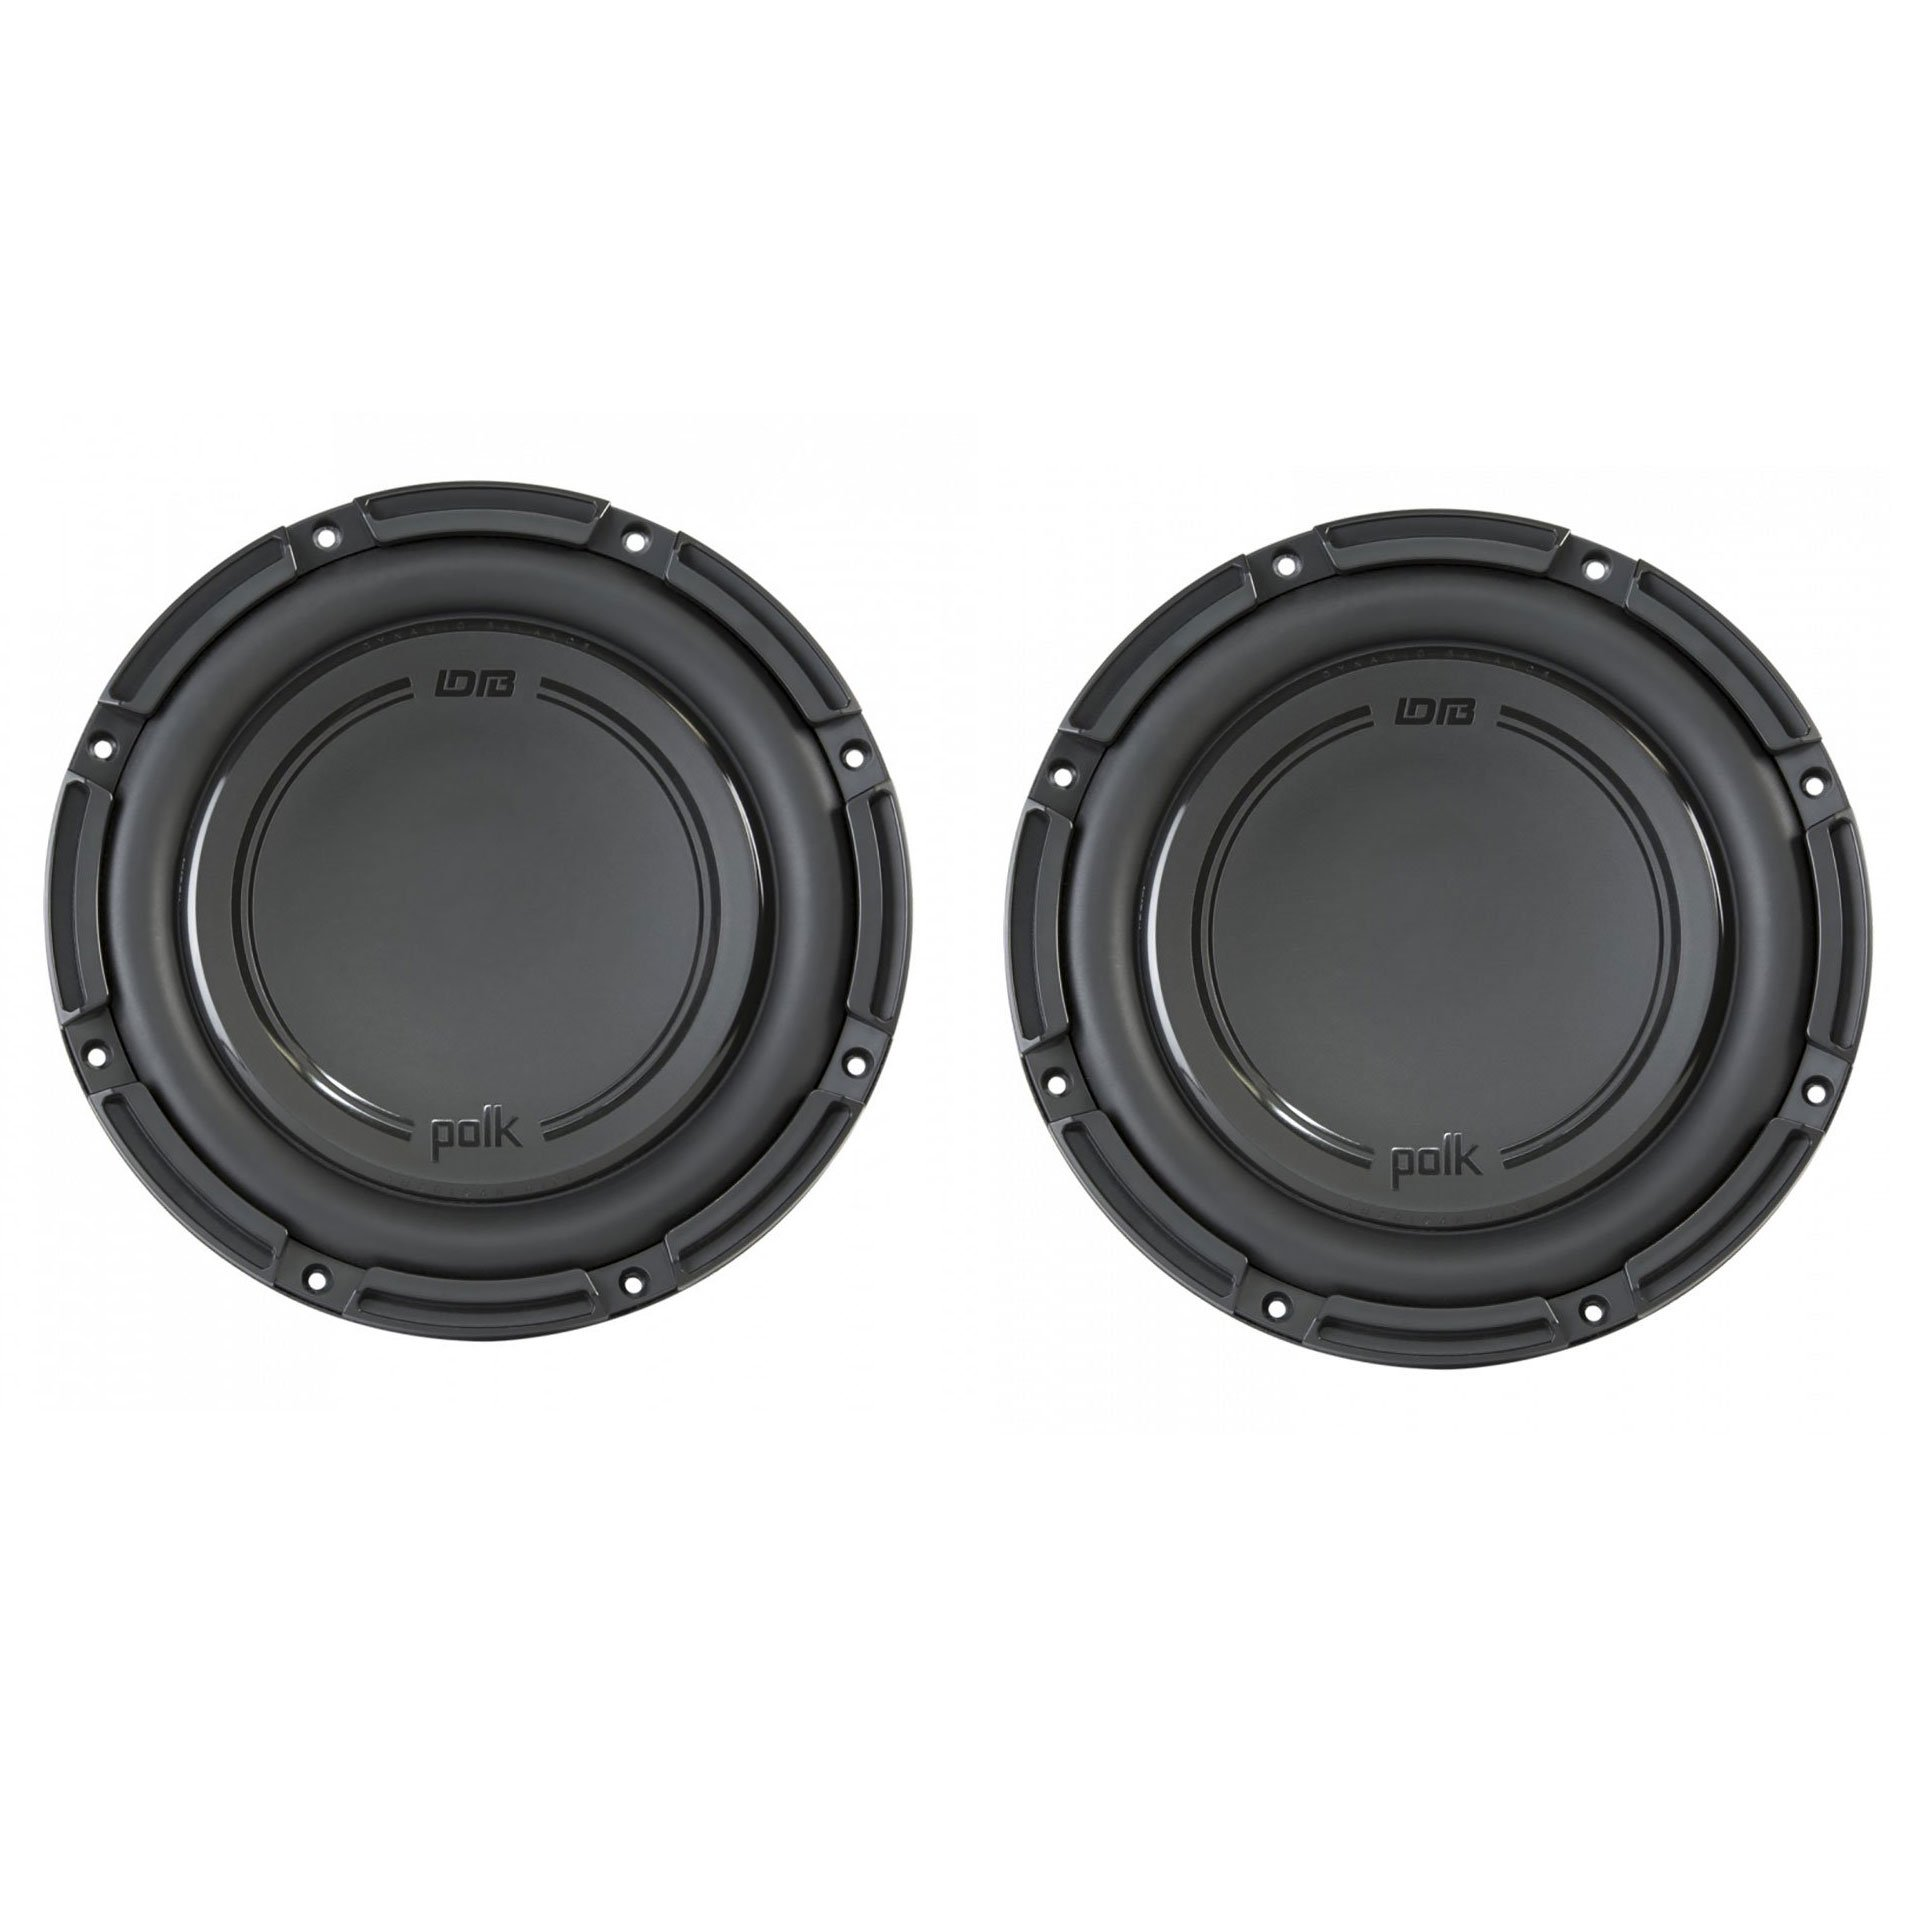 Polk Audio DB+ 10 Inch 1050 Watt 4 Ohm SVC Marine & Car Subwoofer (2 Pack)